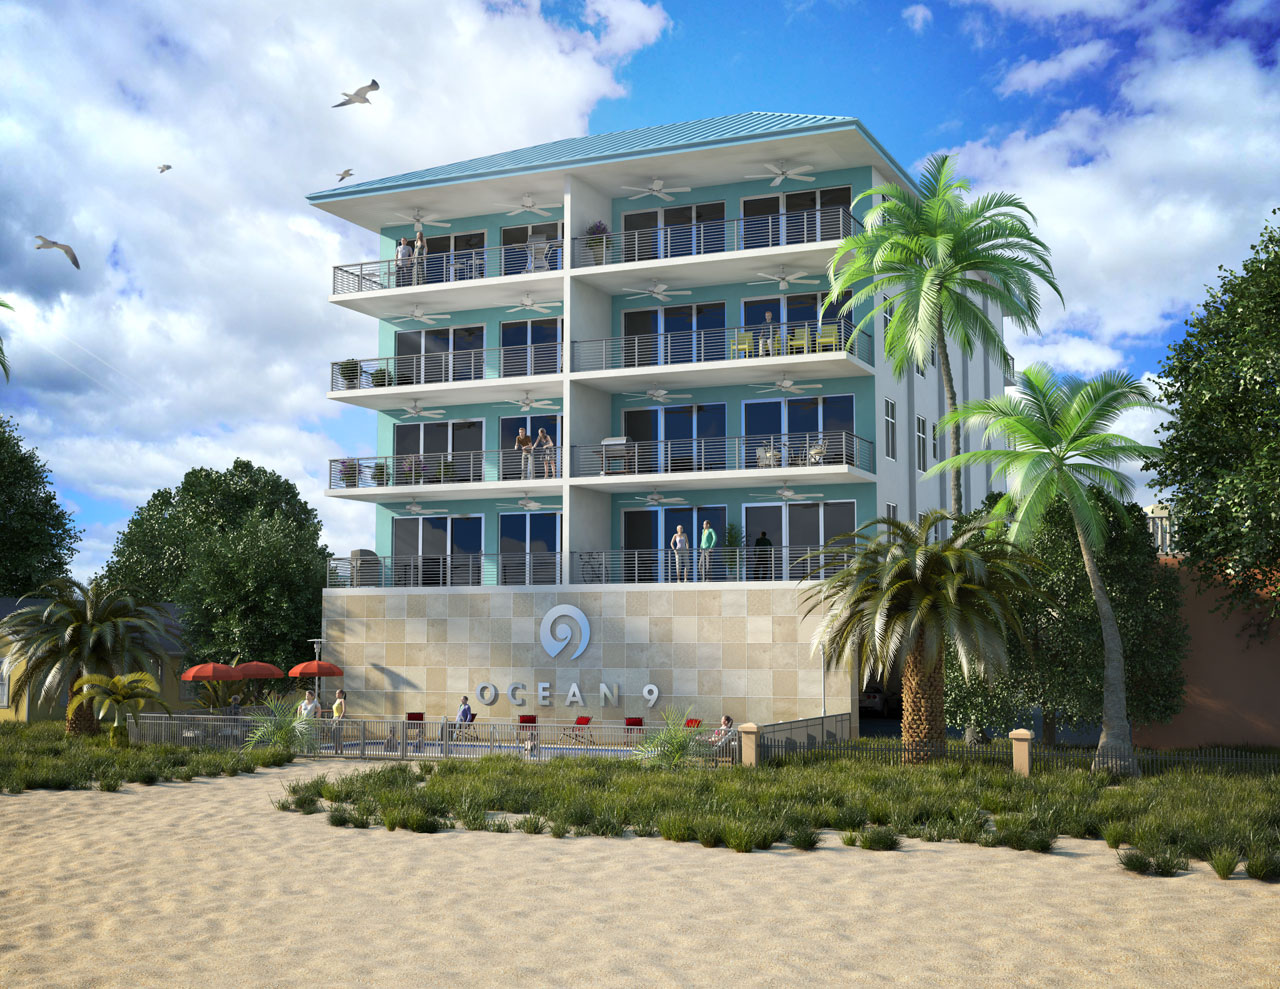 Exterior rendering of a beachfront condominium with balconies overlooking the pool area and sandy beach.